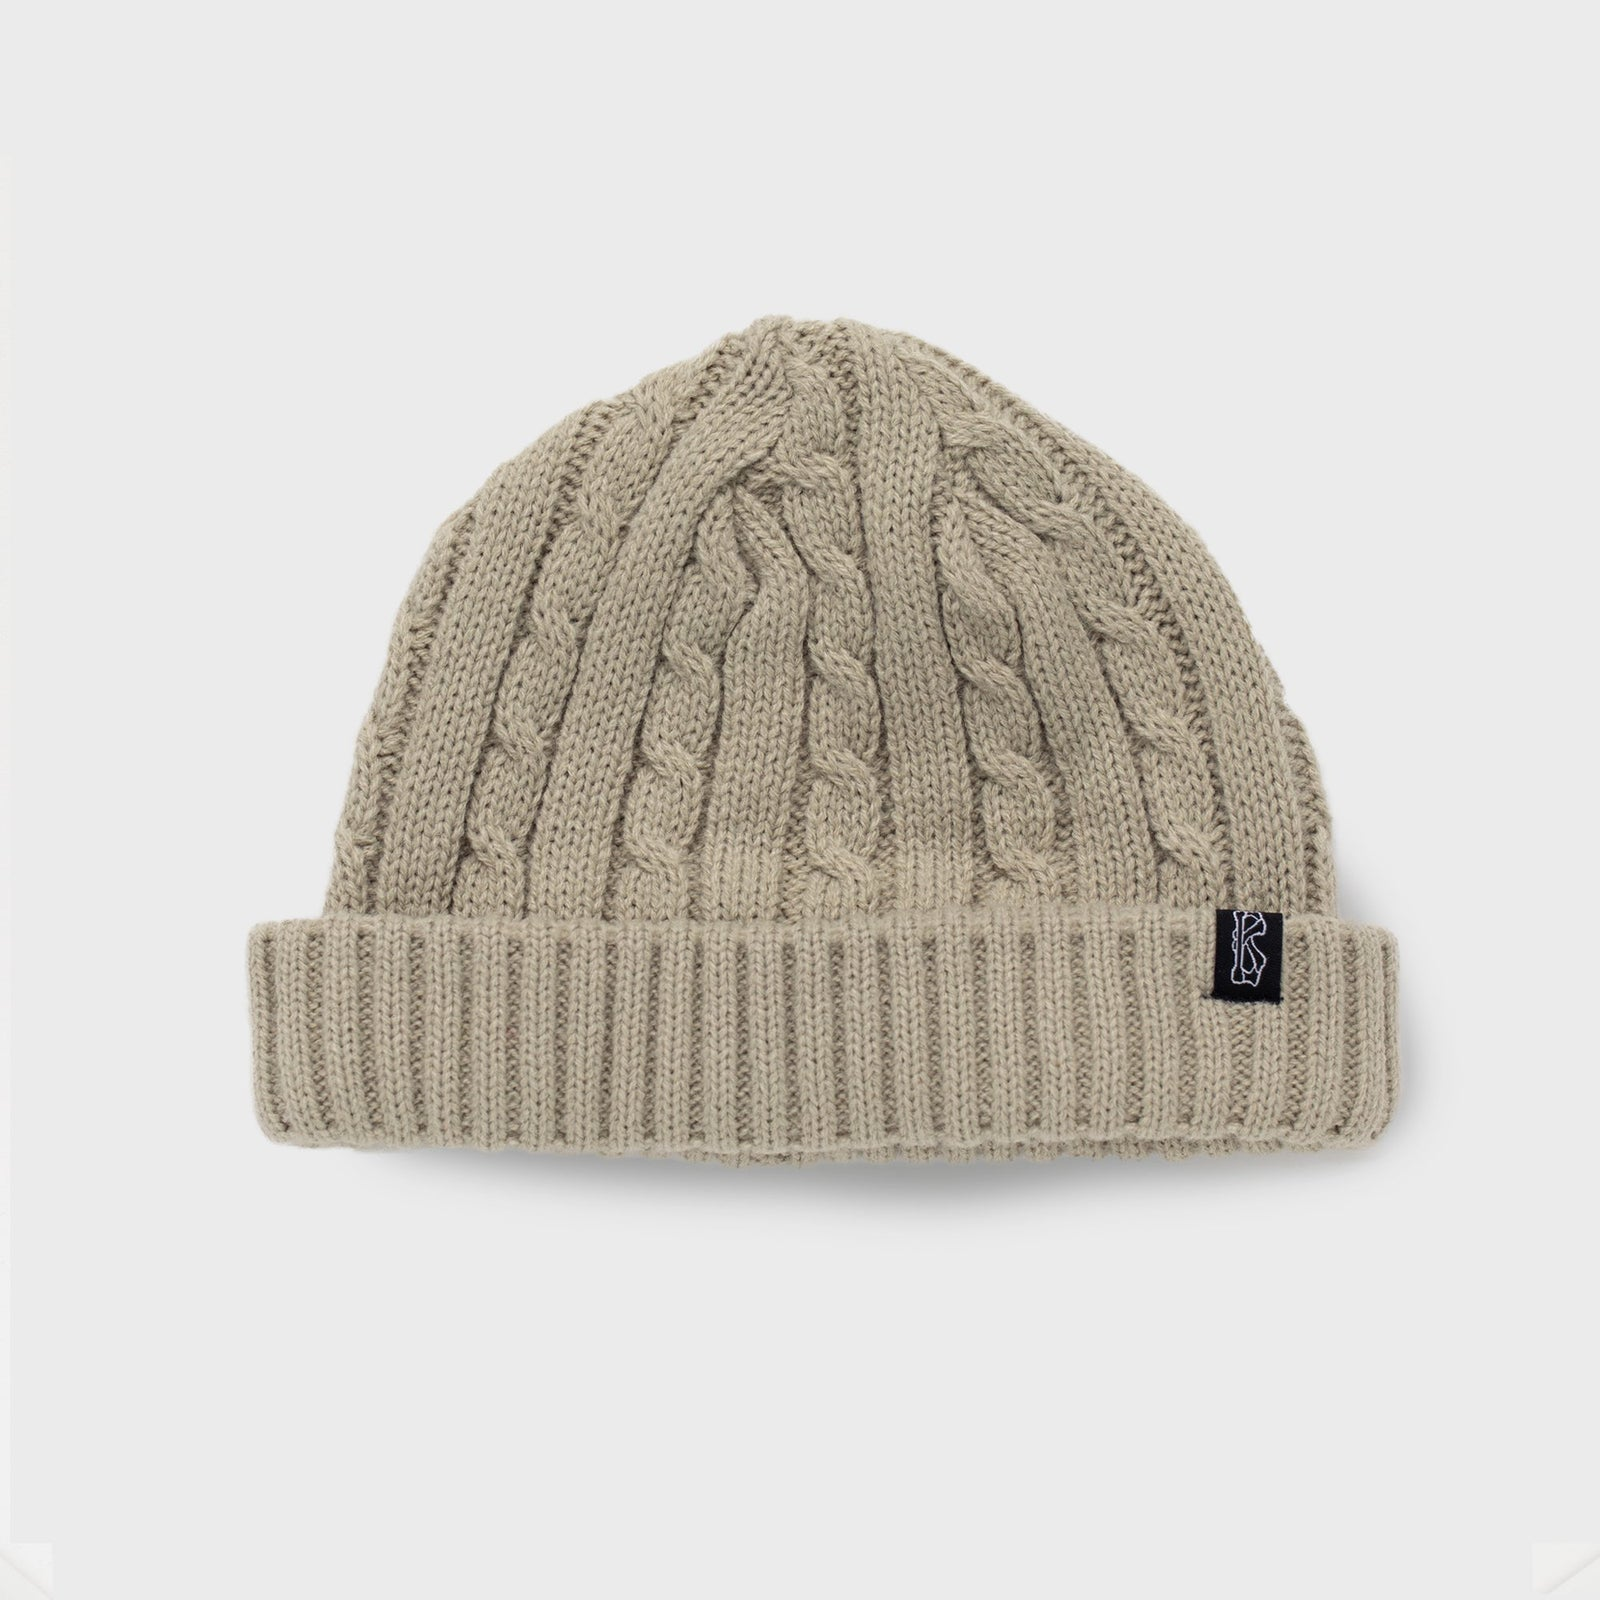 Vanilla Cream - Fisherman Knit Beanie